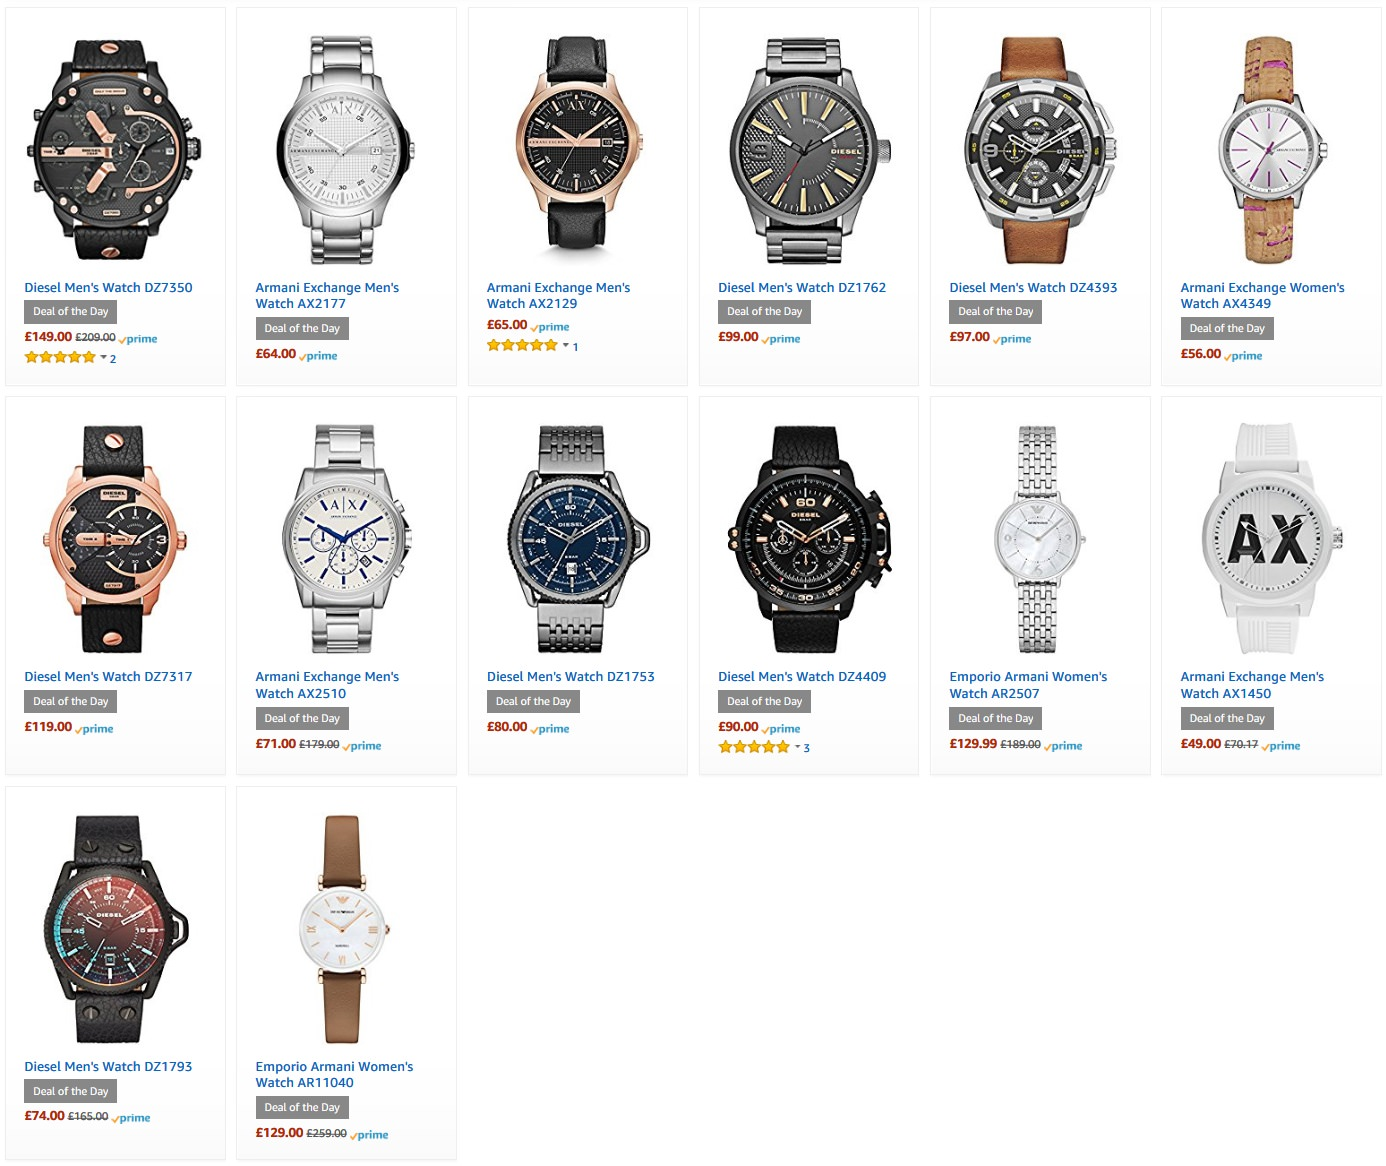 Armani And Diesel Watches For Less Than 163 150 Diesel Men S